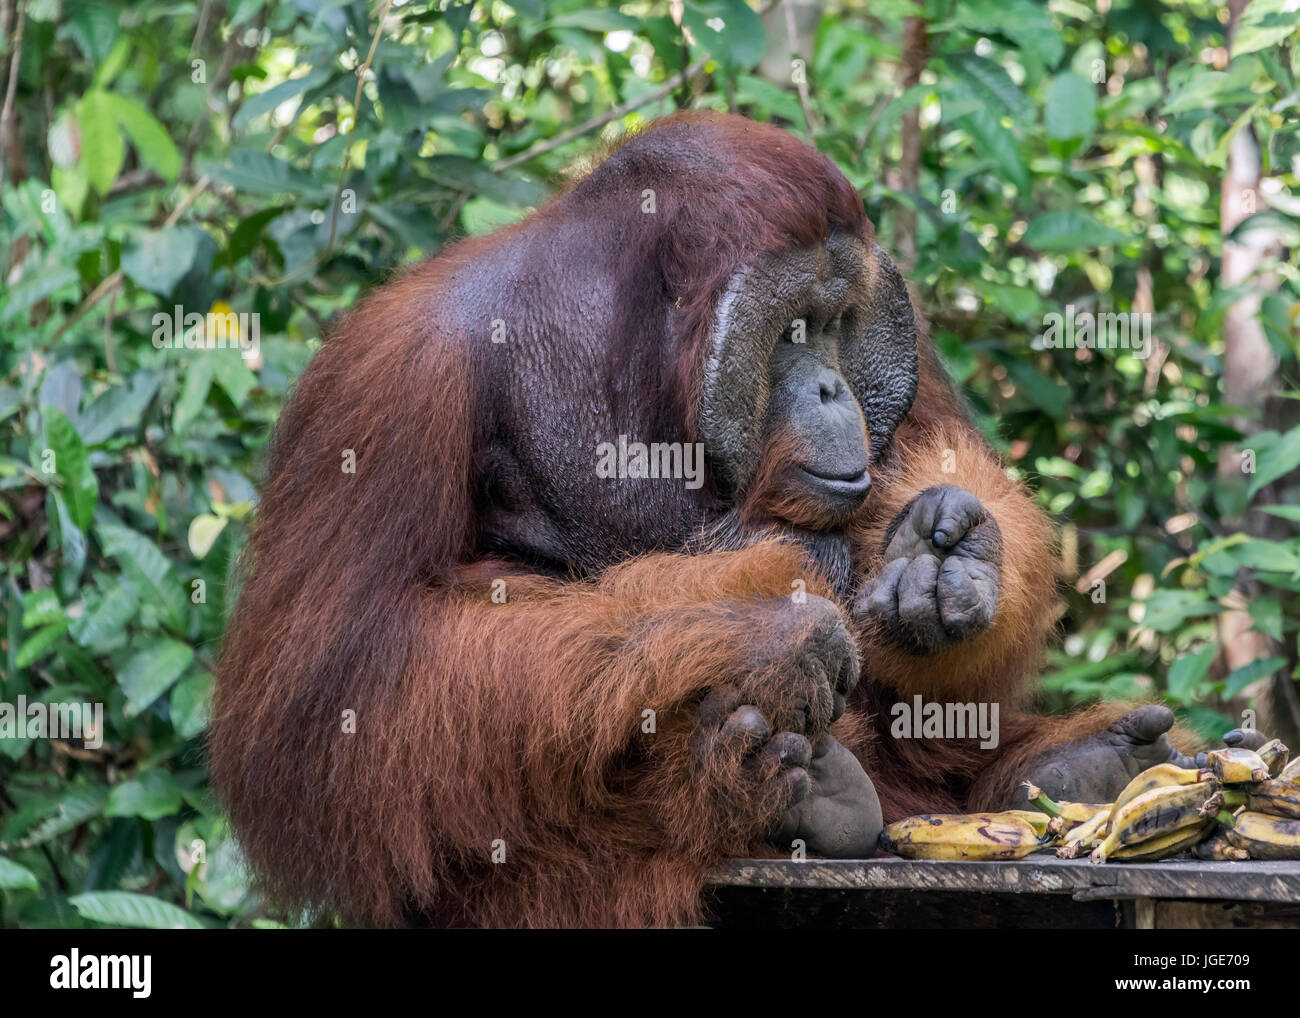 Flanged male organutan inspecting his nails on a feeding platform, Tanjung Puting National Park, Kalimantan, Indonesia - Stock Image